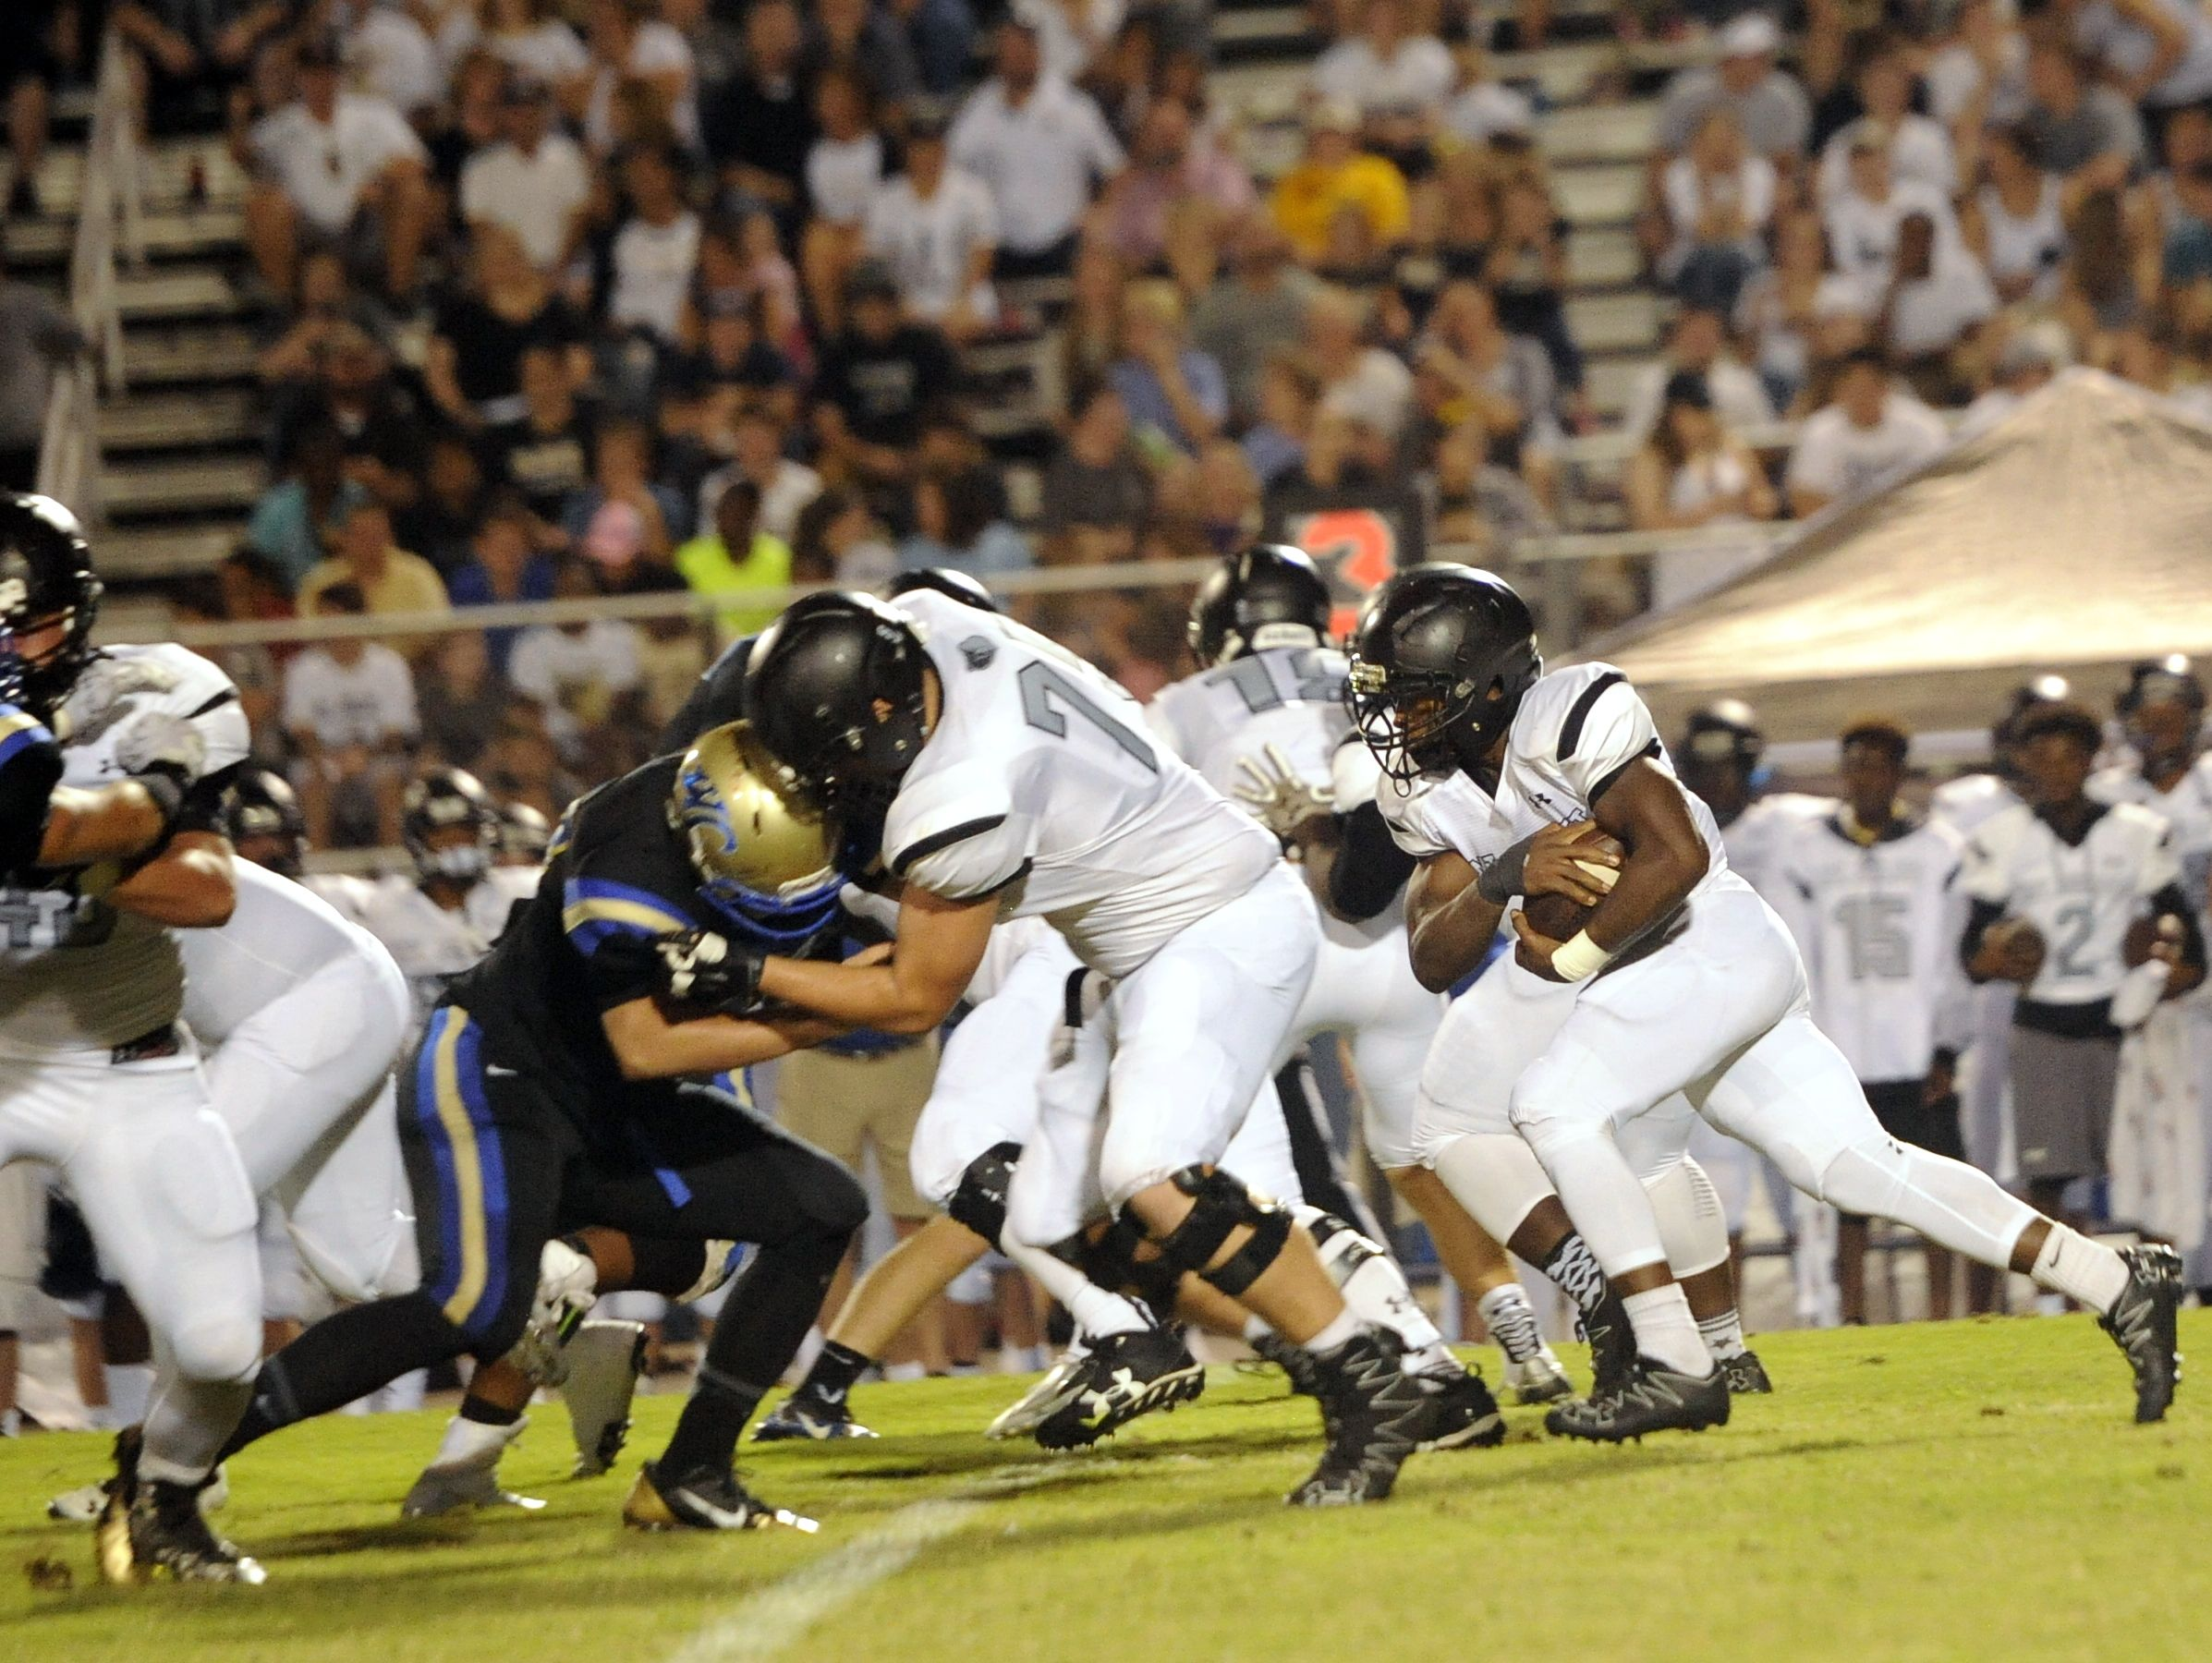 Mt. Juliet sophomore running back Marcello Walton carries the football during the second quarter.